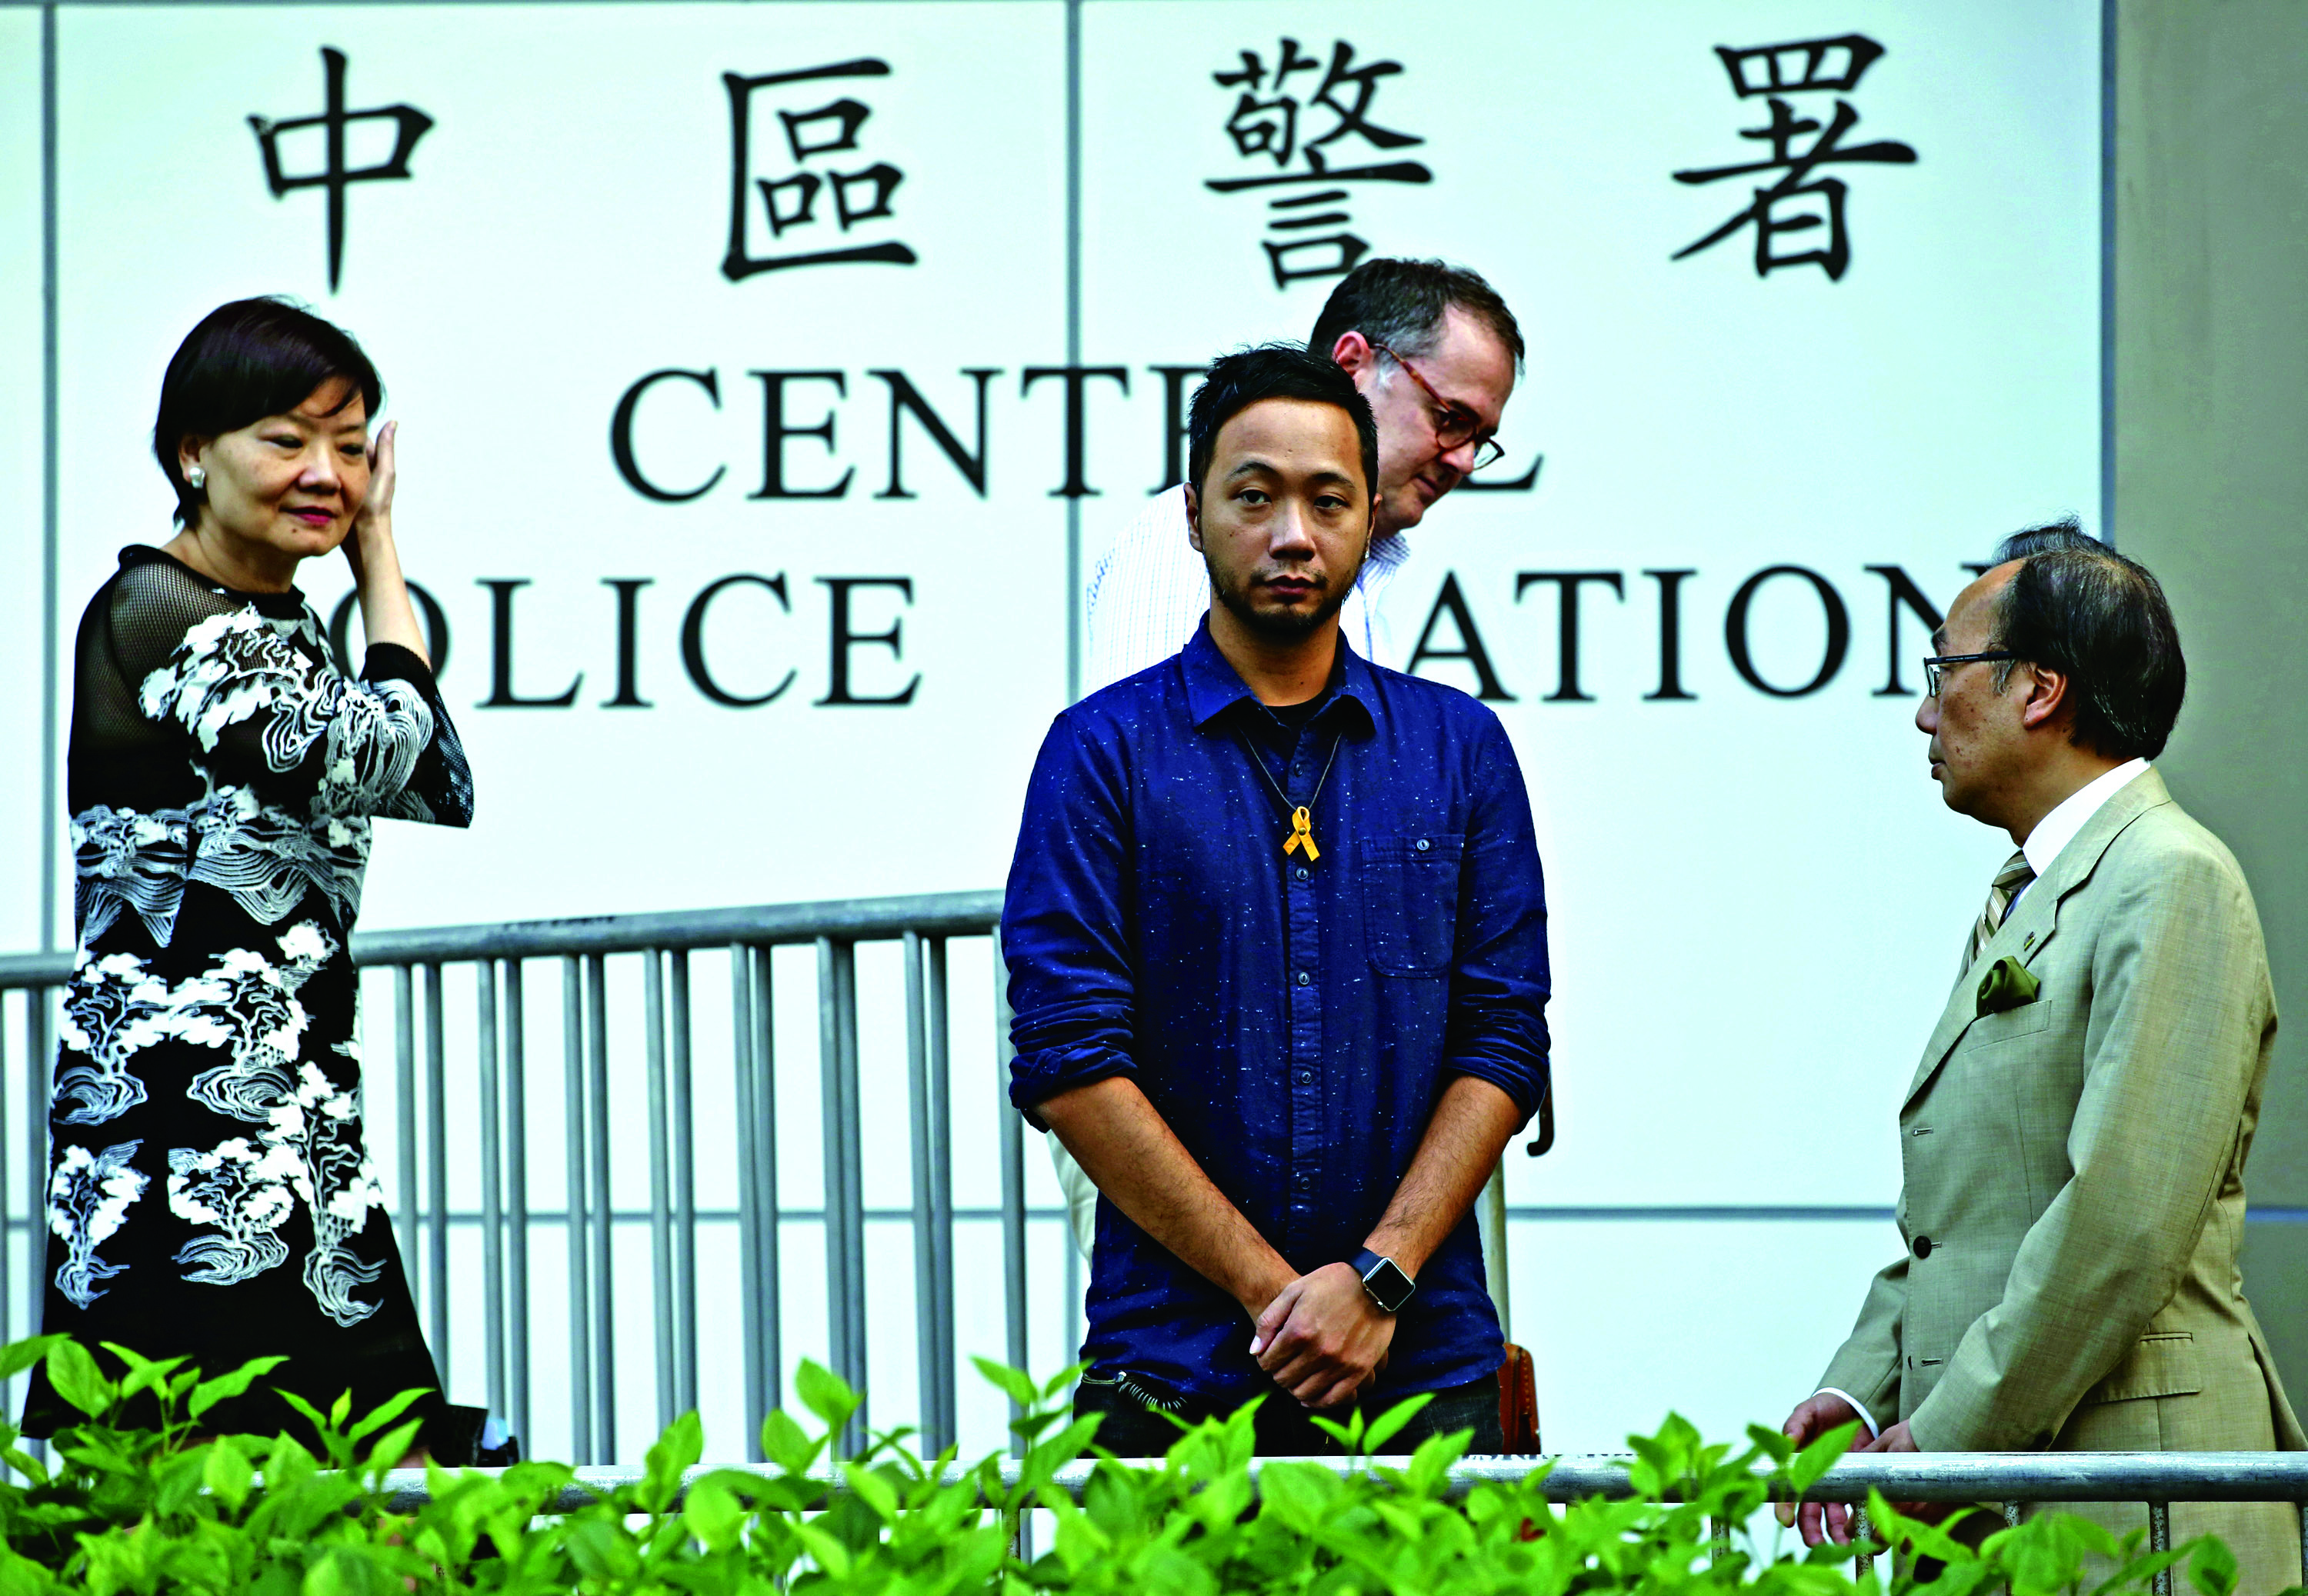 The activist, Ken Tsang, center, reports to a police station in Hong Kong, Thursday, Oct. 15, 2015. Hong Kong police on Thursday charged seven officers with harming an activist who was beaten in a filmed confrontation that stirred outrage among city residents at the height of the pro-democracy protests last year. (AP Photo/Kin Cheung)